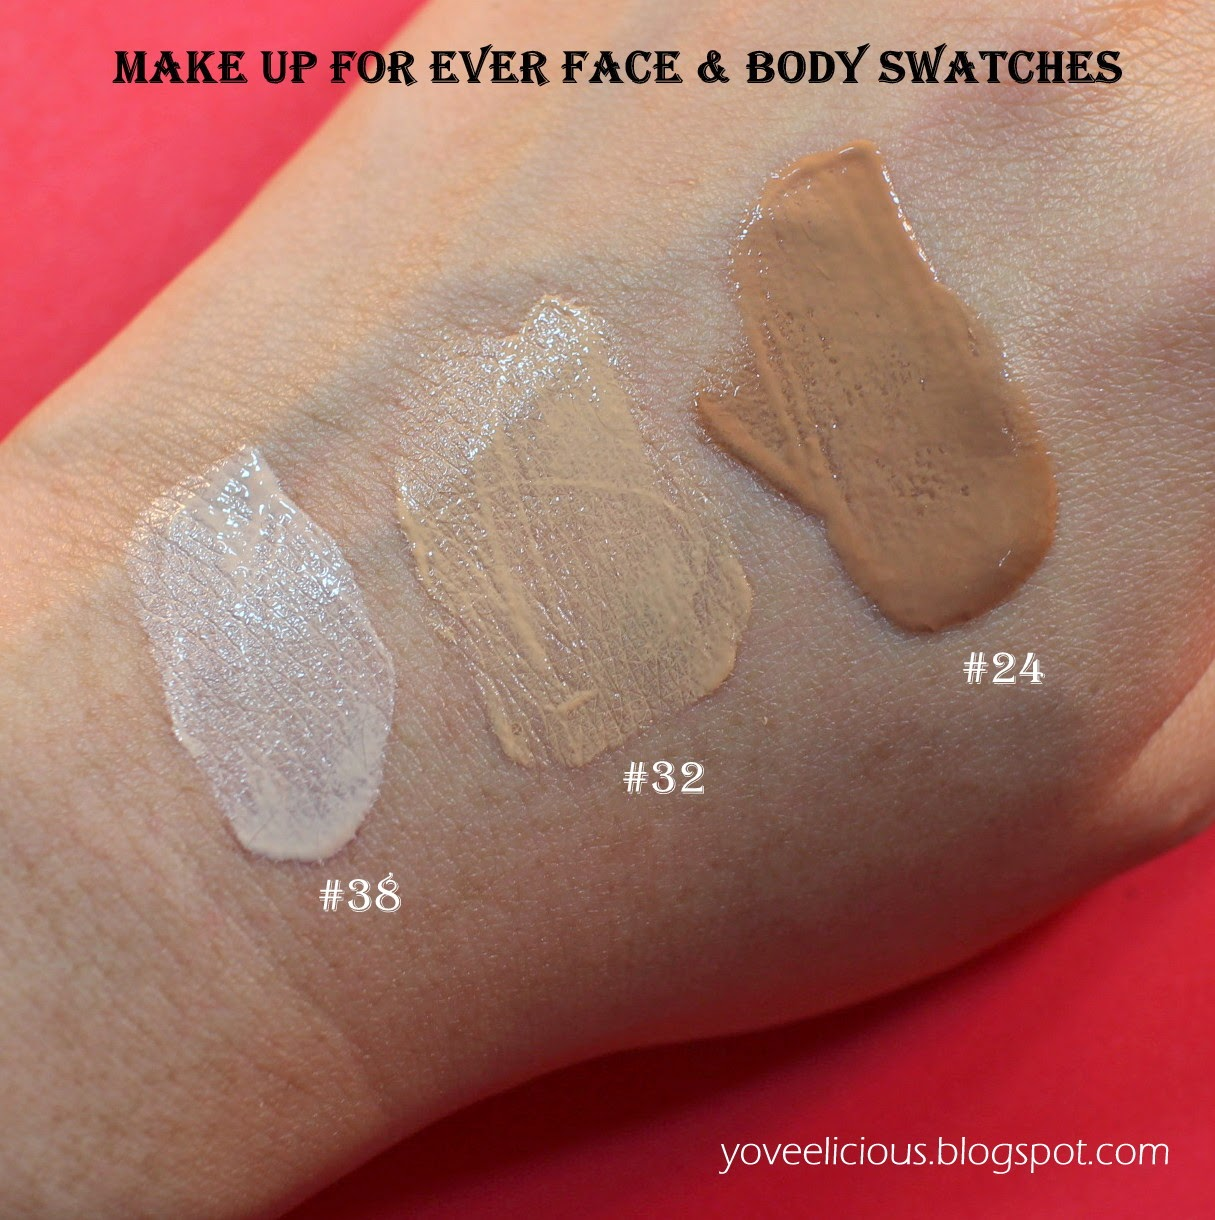 yoveelicious: Make Up For Ever Face and Body Review and Swatches #24 ...